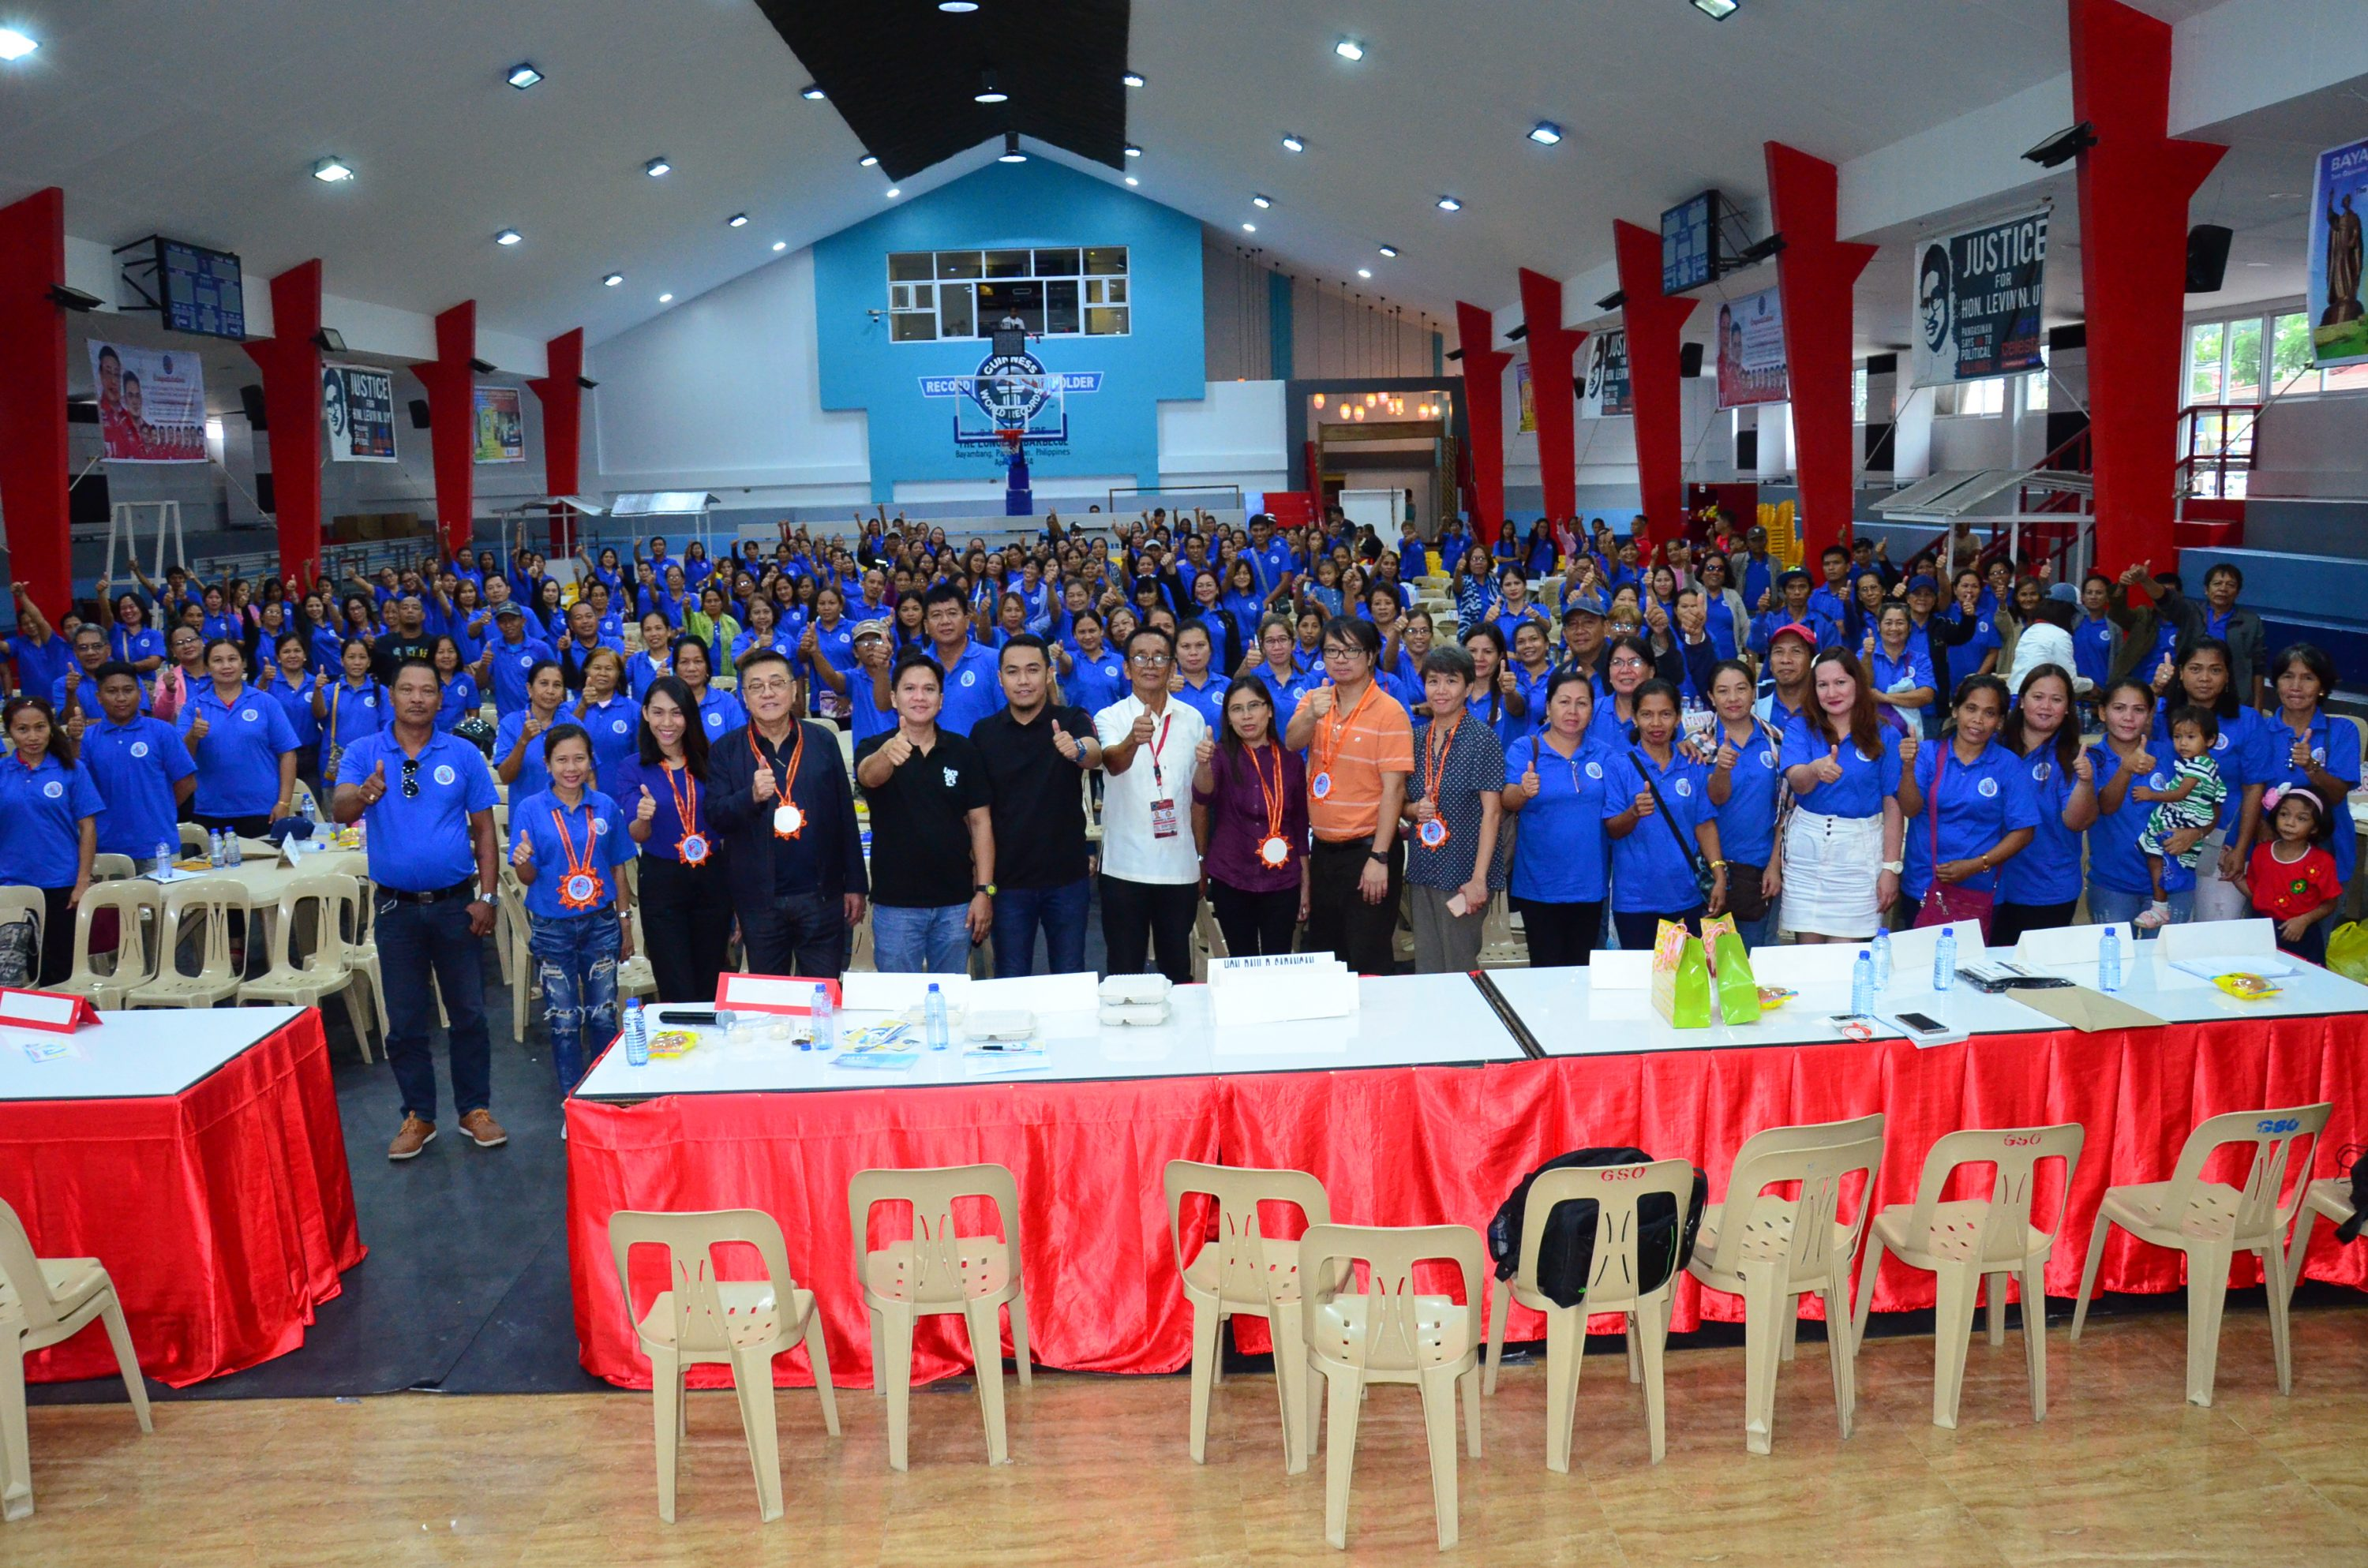 OFW Convention